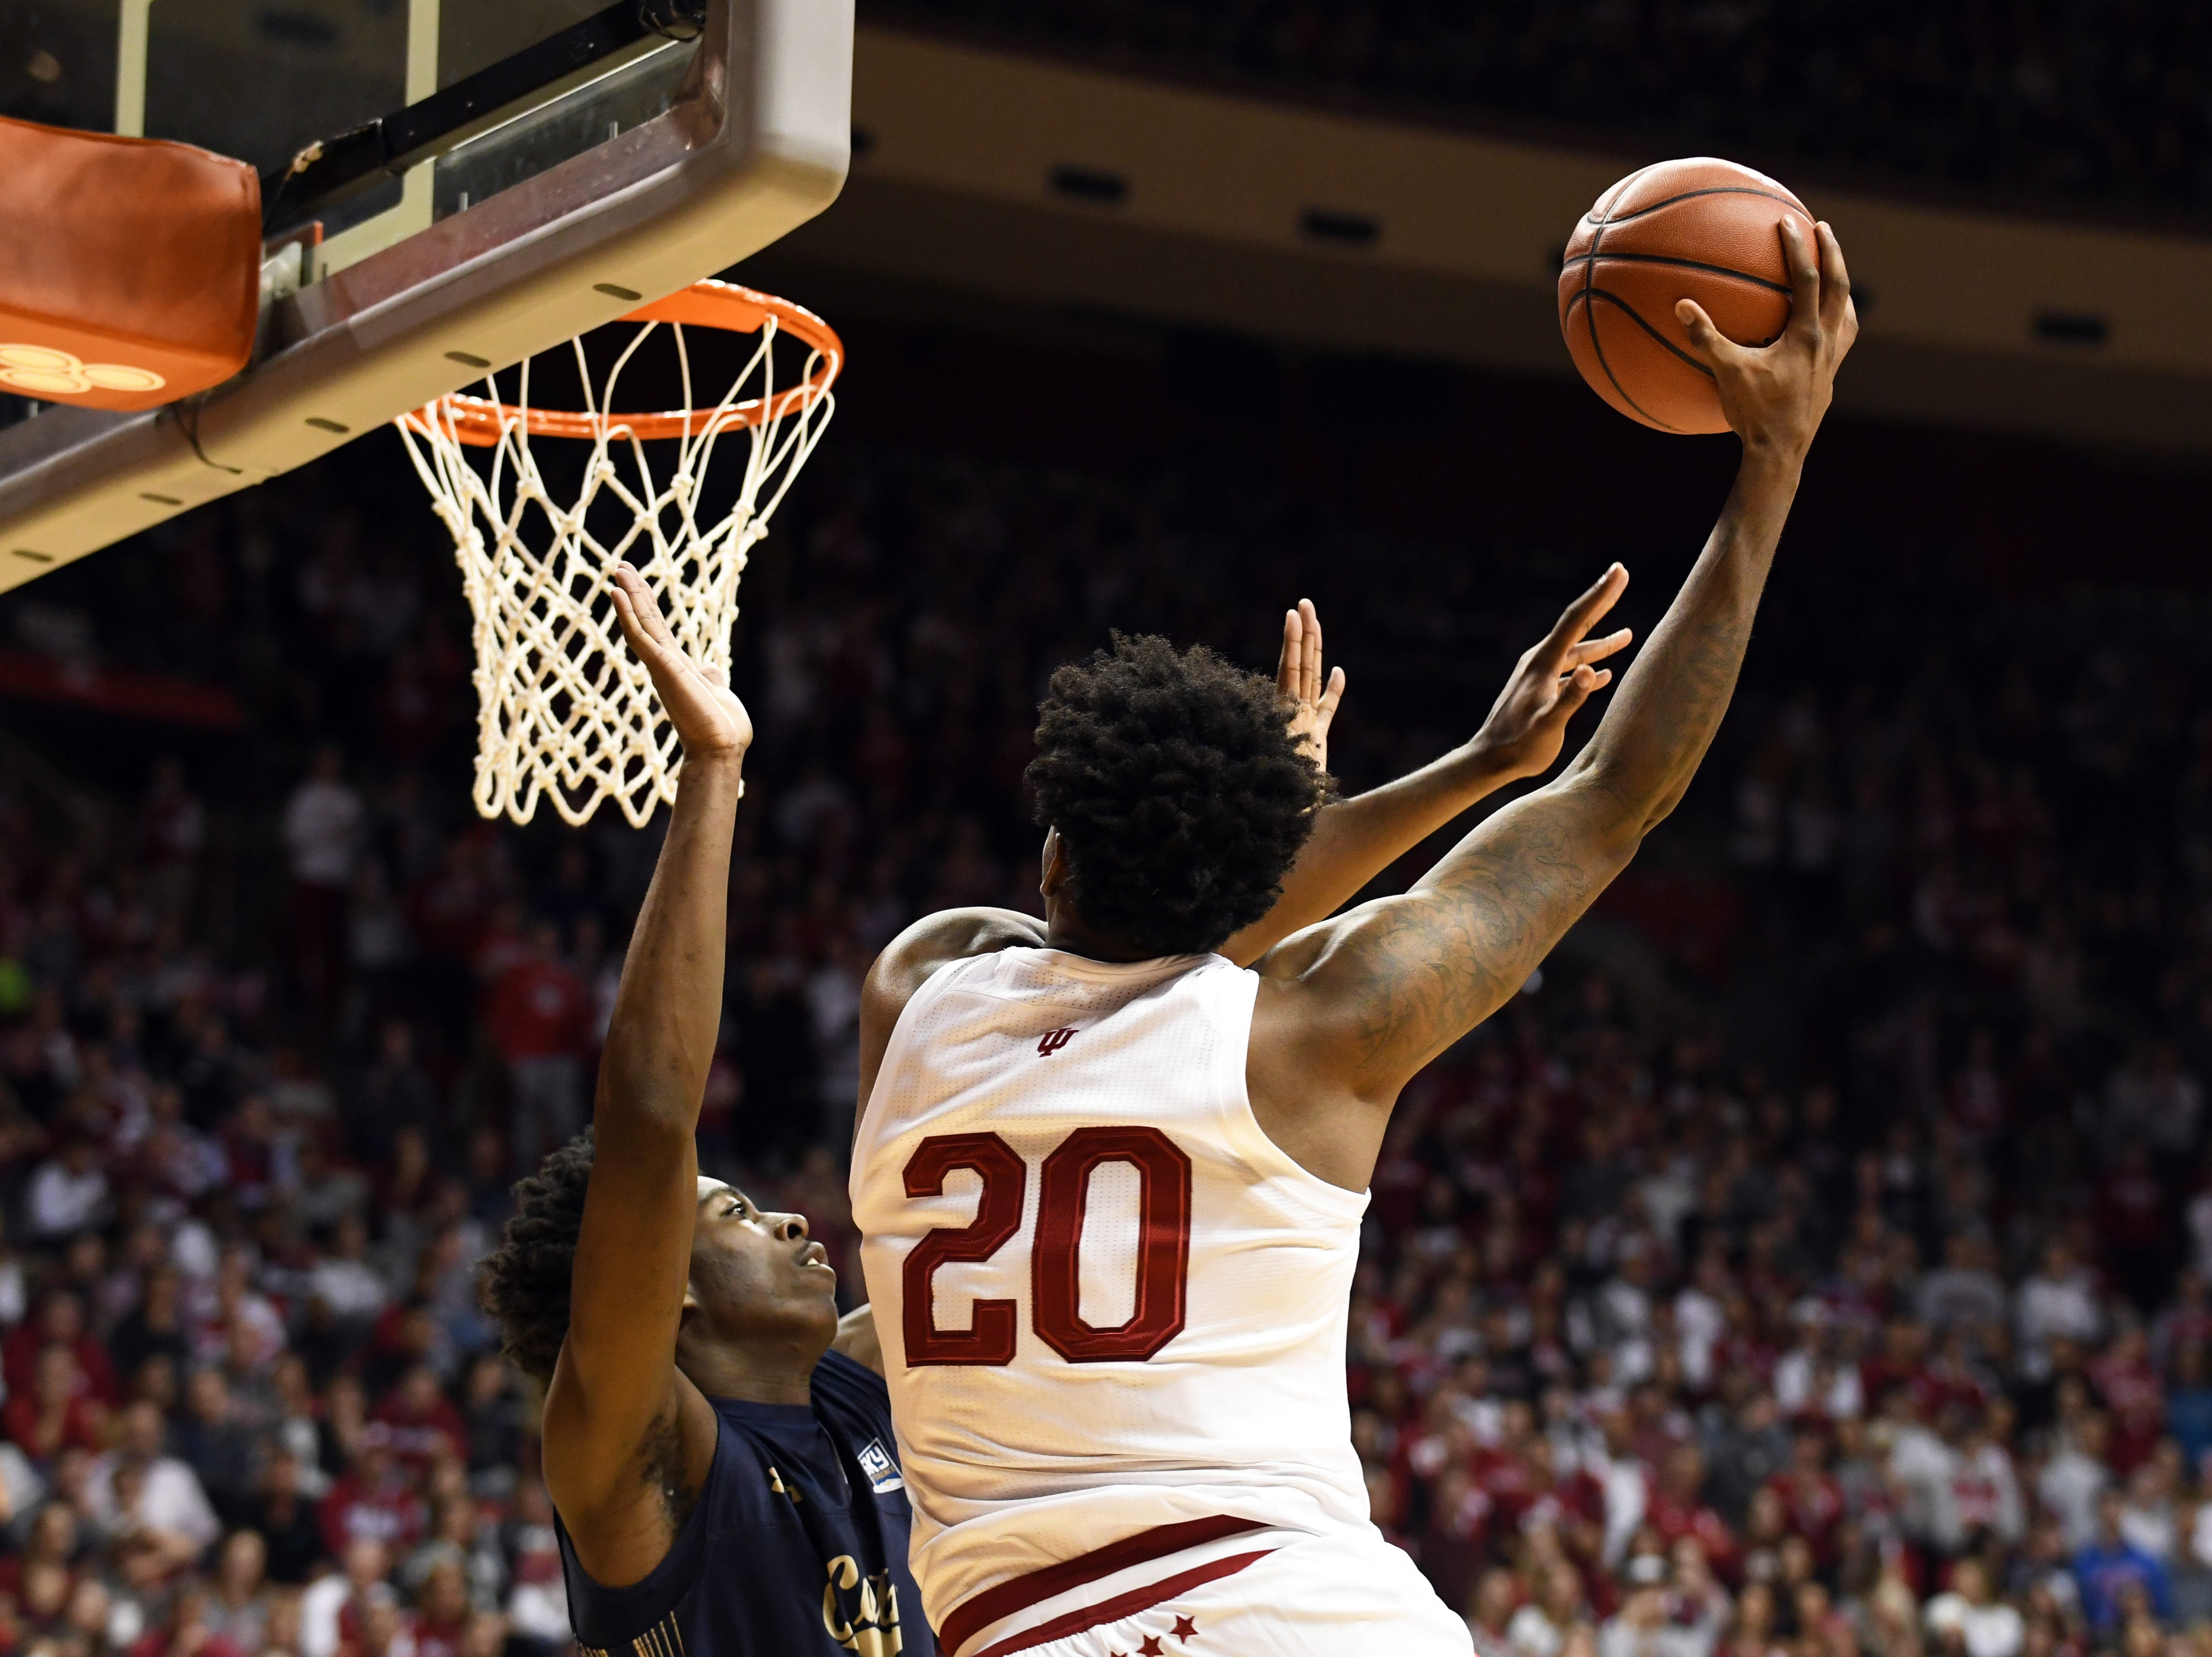 Indiana Hoosiers forward De'Ron Davis (20) makes a hook shot during the game against Montana State at Simon Skjodt Assembly Hall in Bloomington, Ind., on Friday, Nov. 9, 2018.